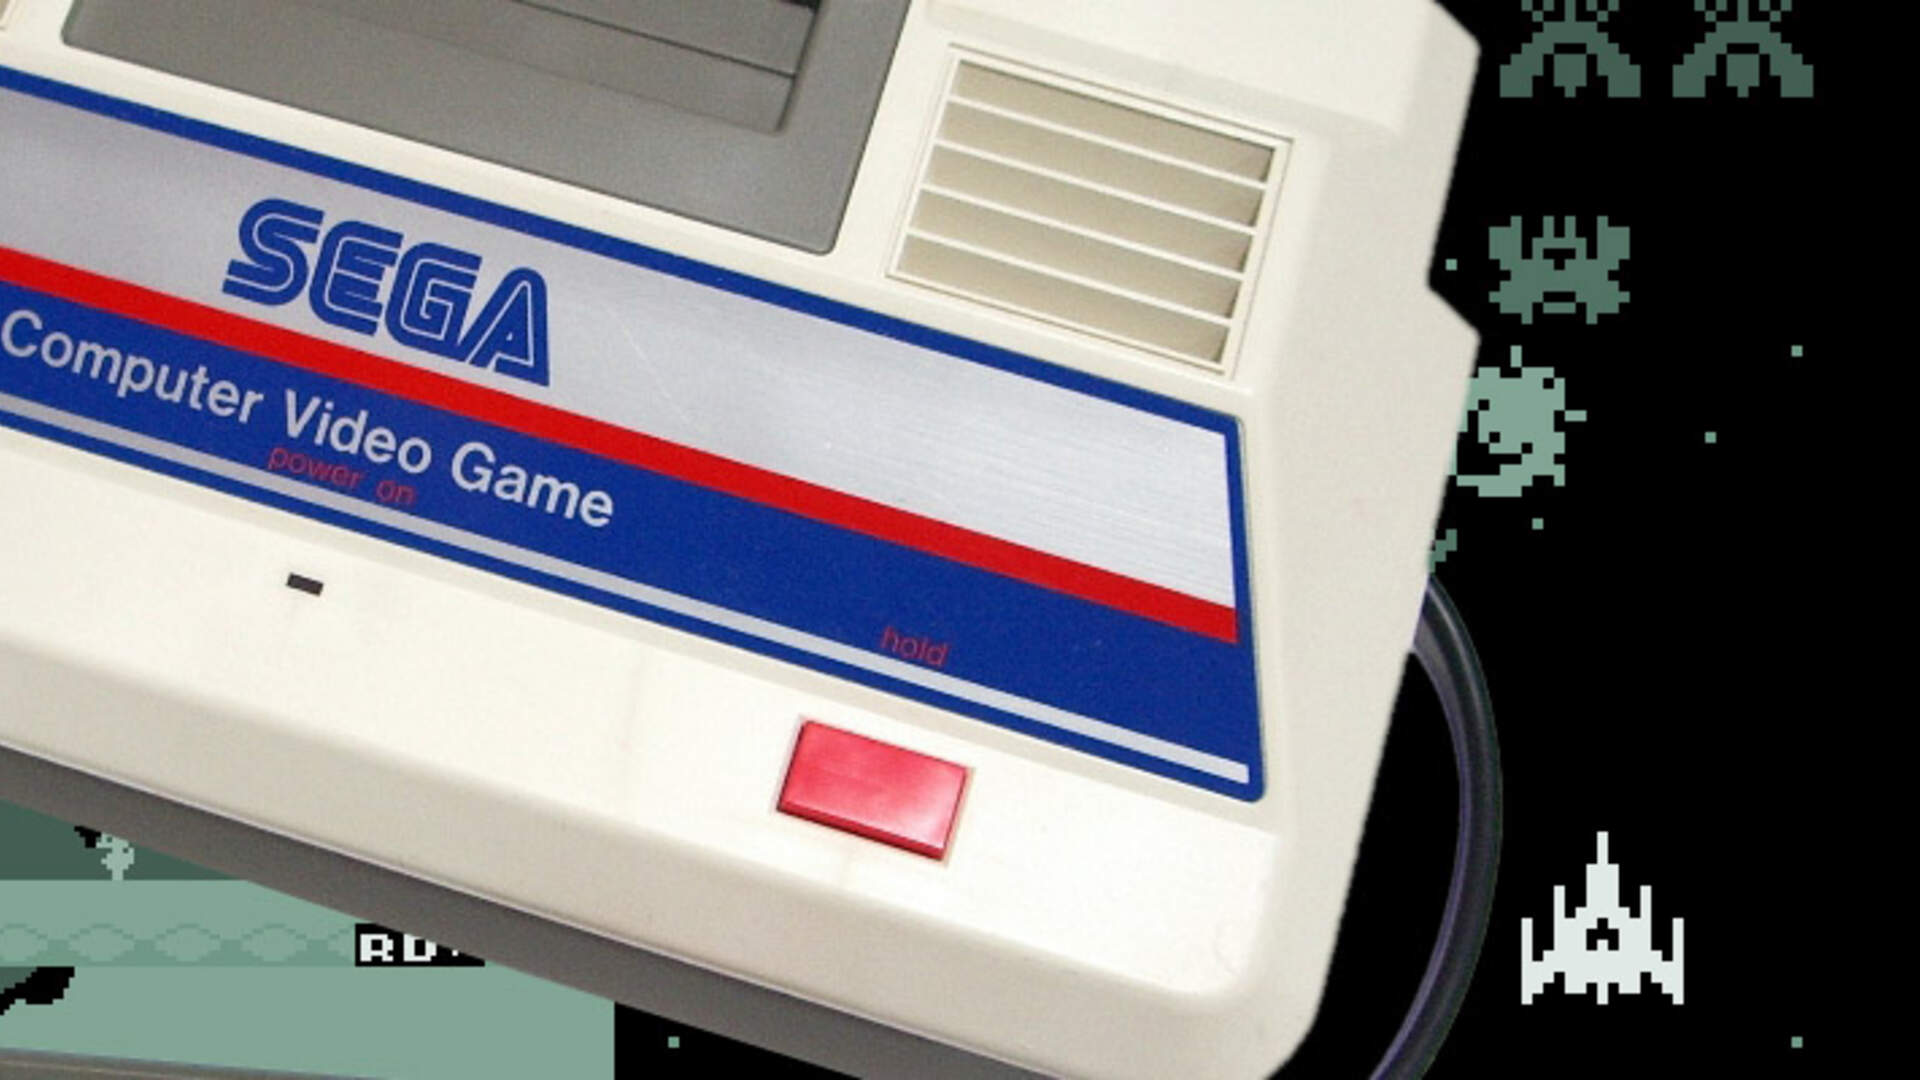 The Most Important Games on Sega's SG-1000